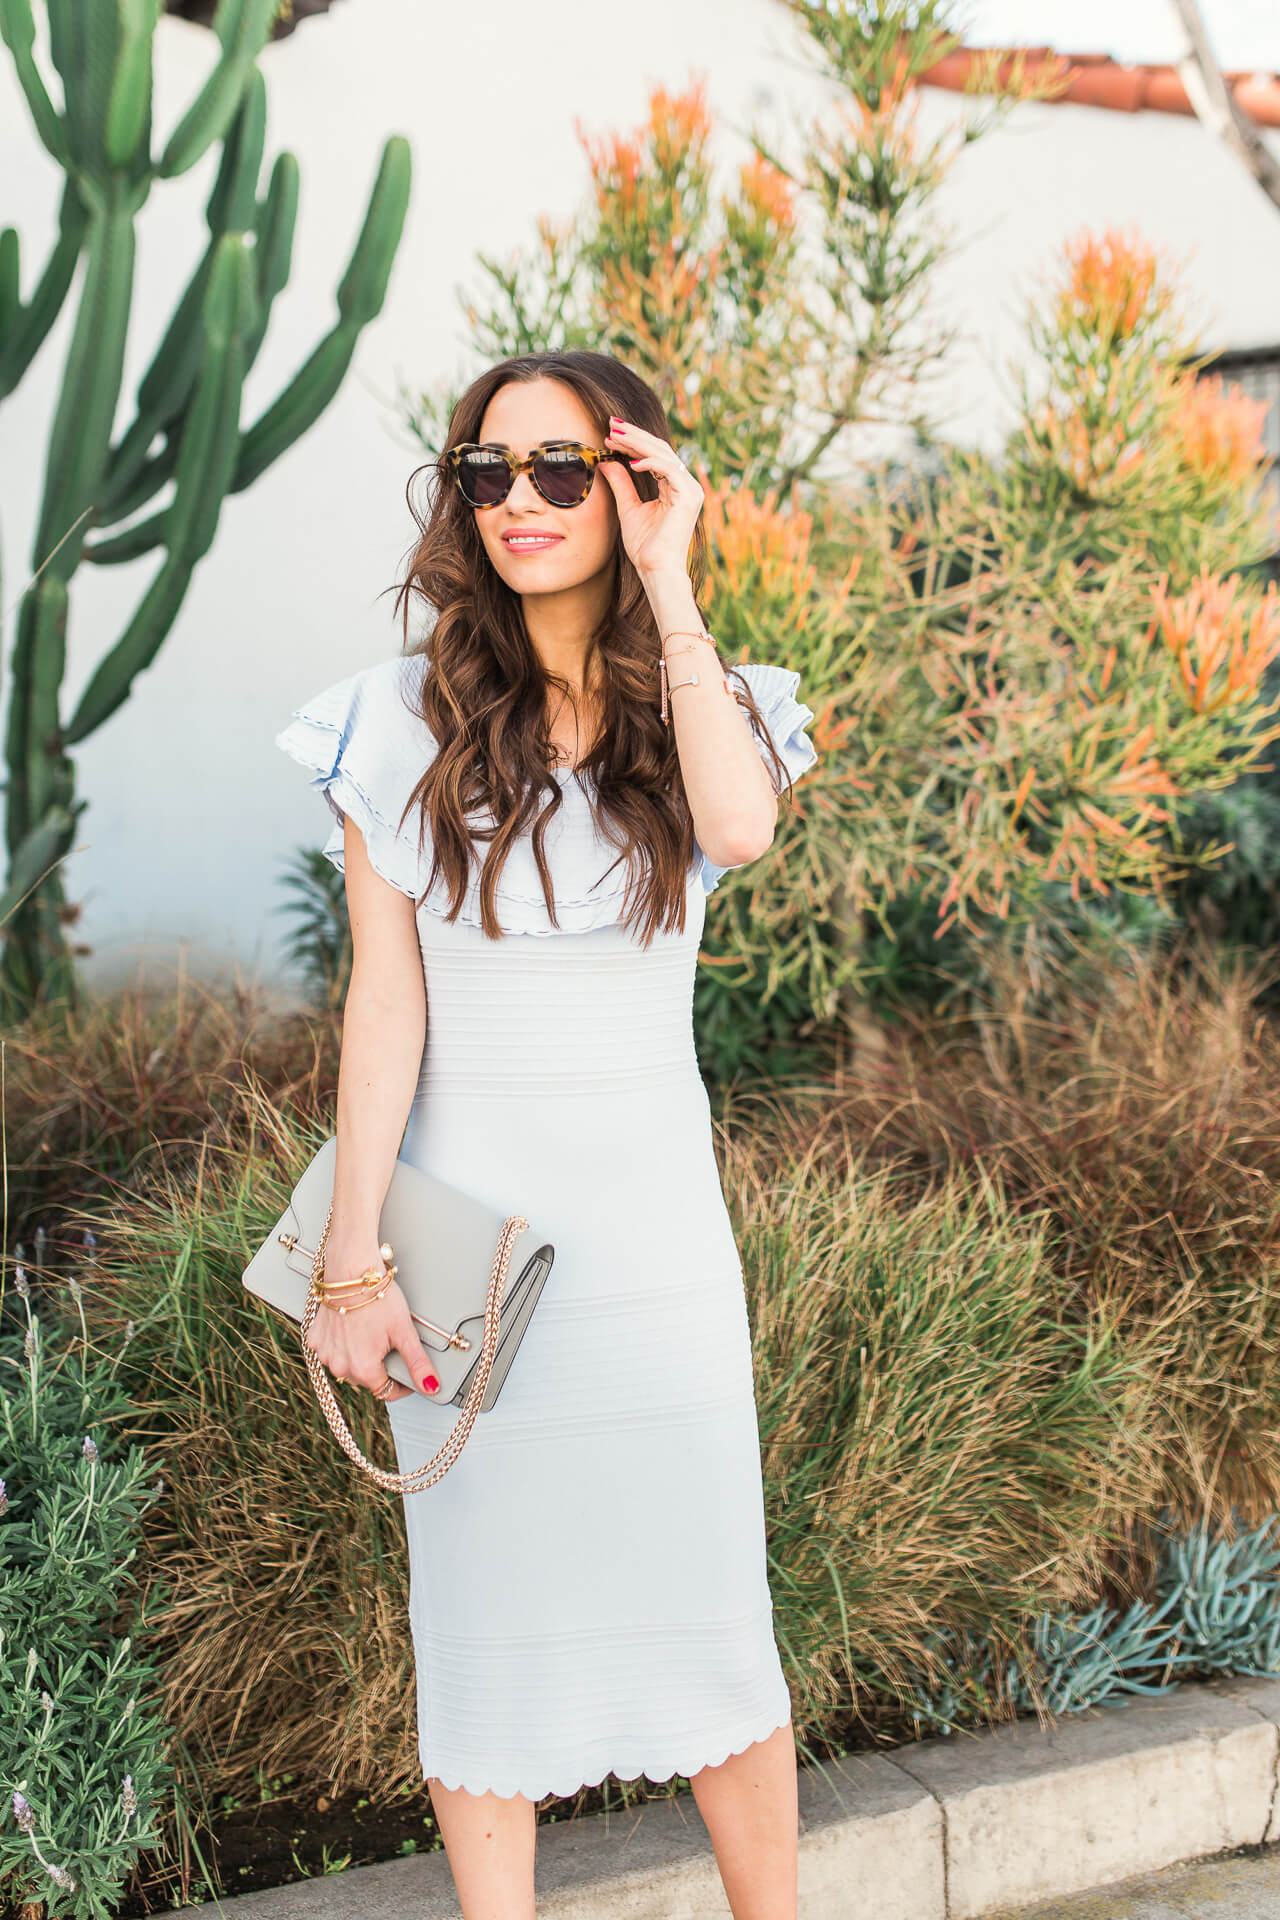 feminne and classic style inspiration - styling idea for a sheath bodycon dress